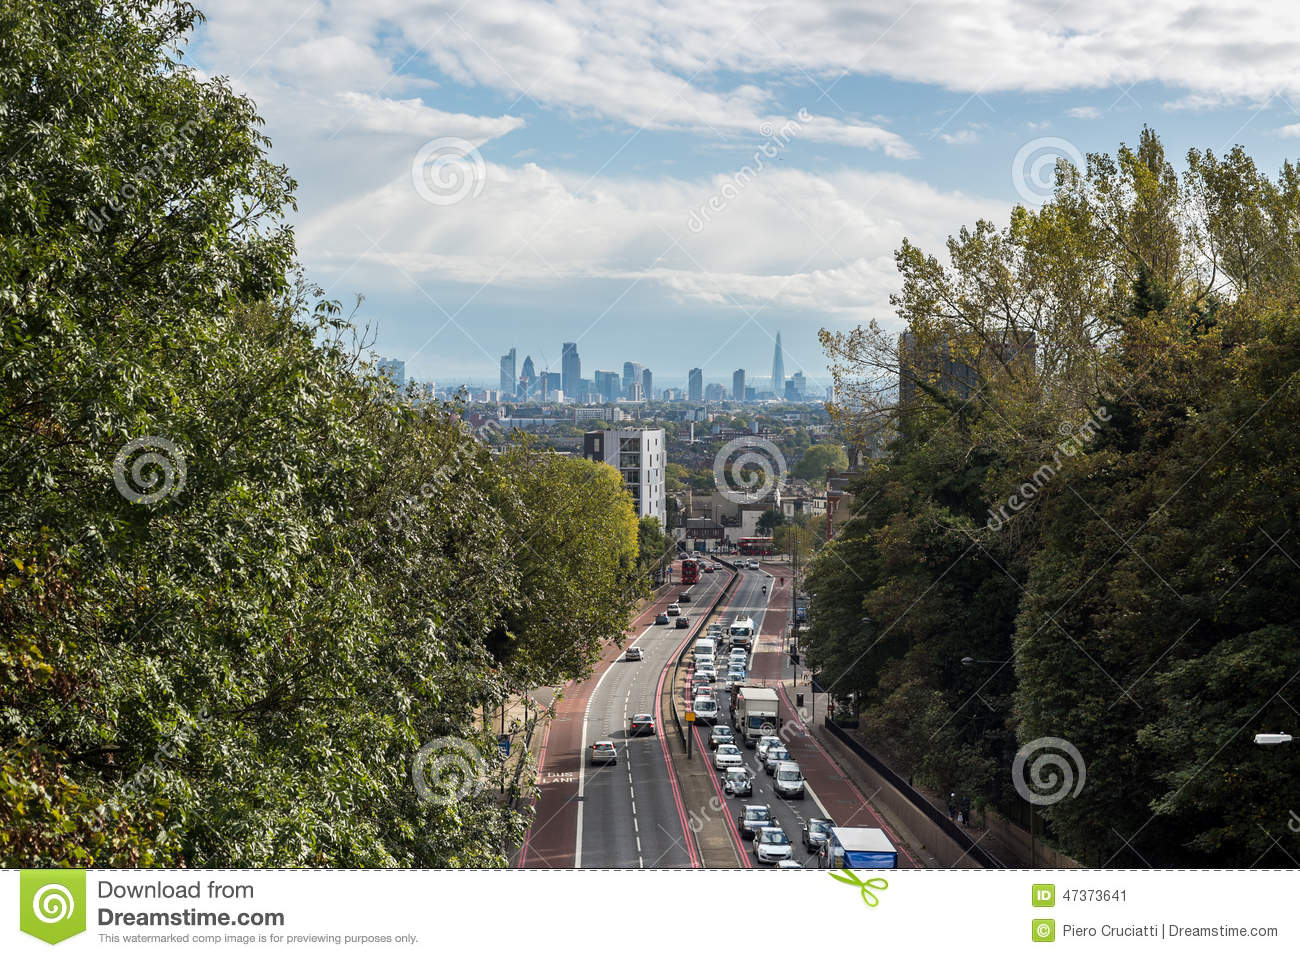 New London skyline seen from north London